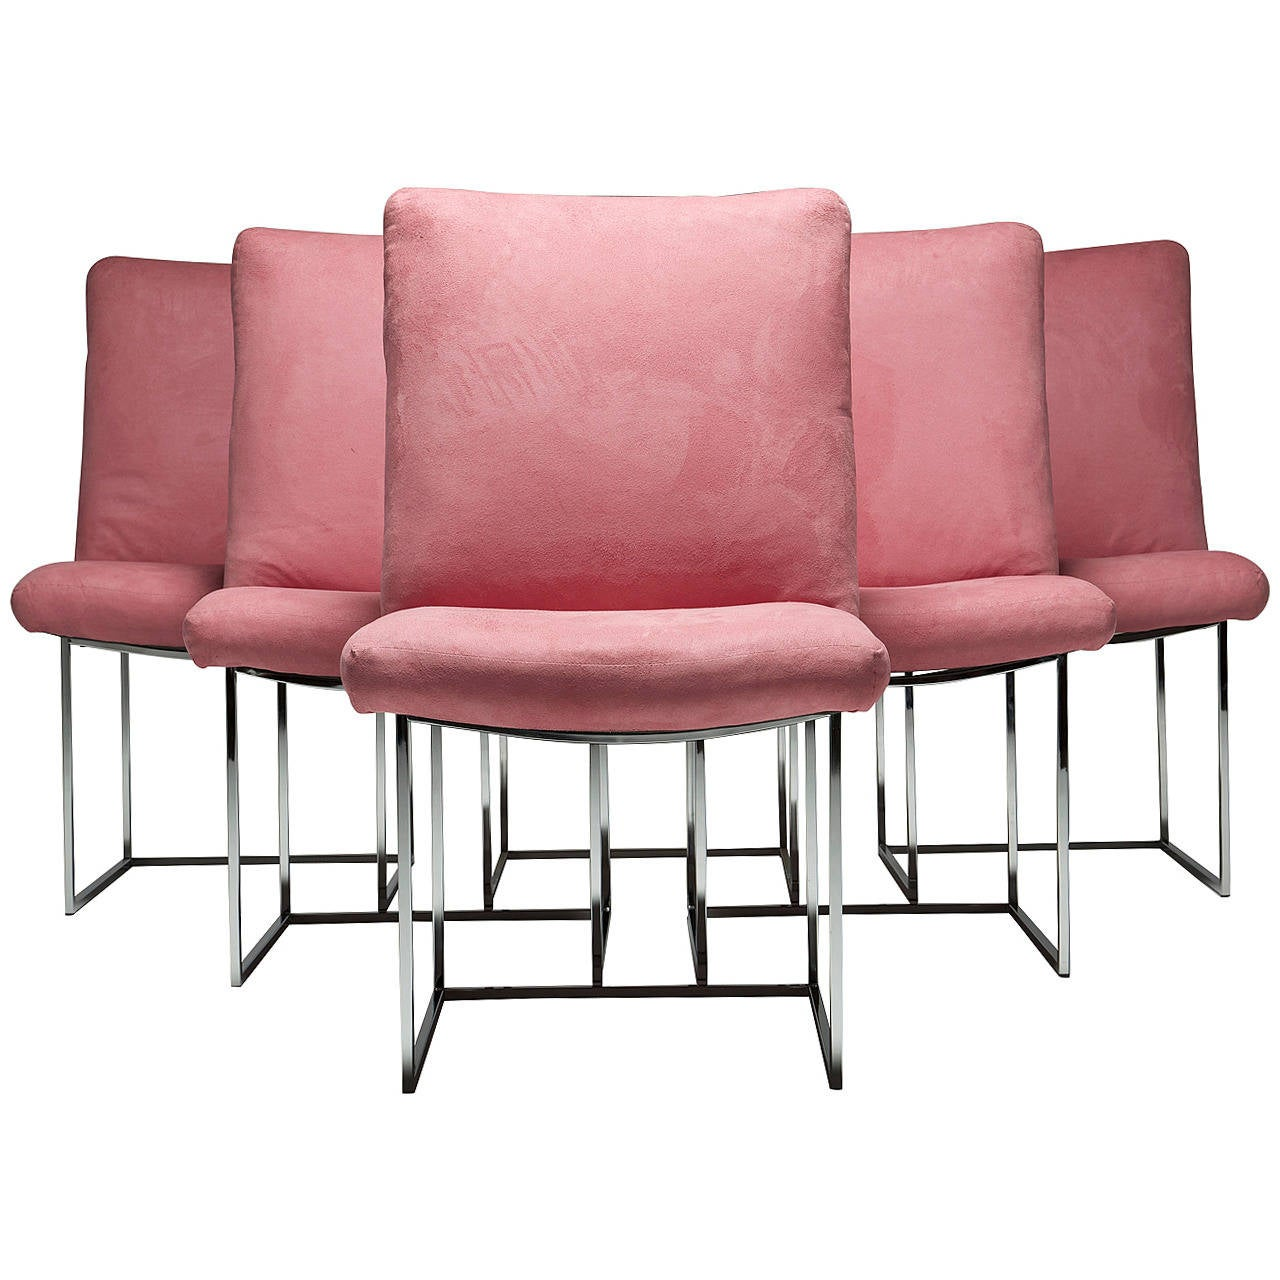 suede dining table chairs outdoor teak six chrome frame milo baughman in pink ultra